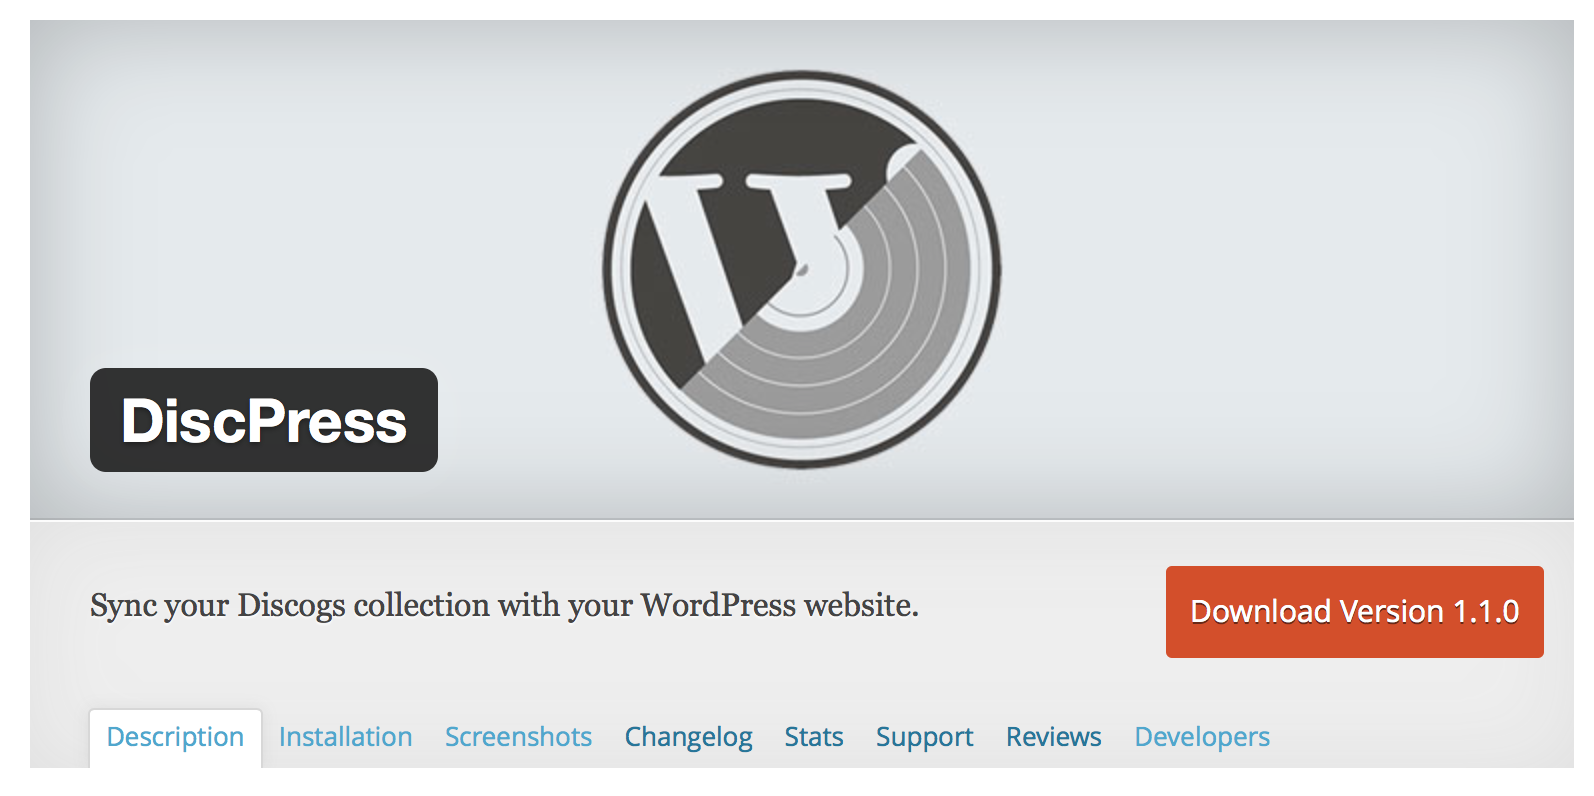 DiscPress – A Vinyl WordPress Plugin